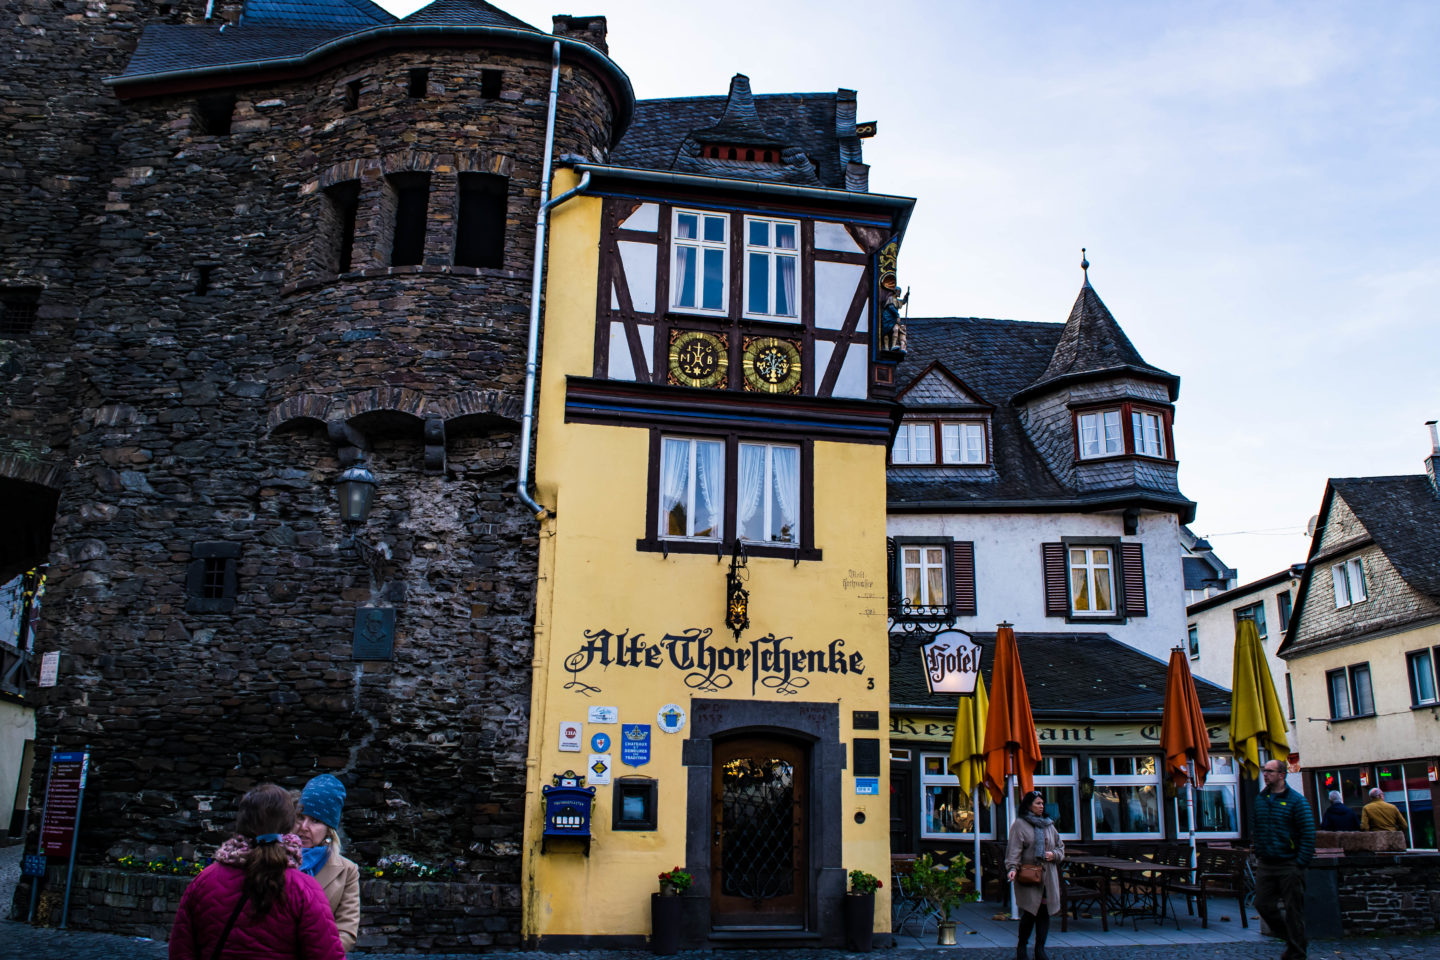 Cochem is full of half-timbered buildings, so you'll definitely get your fairy tale German town fix.